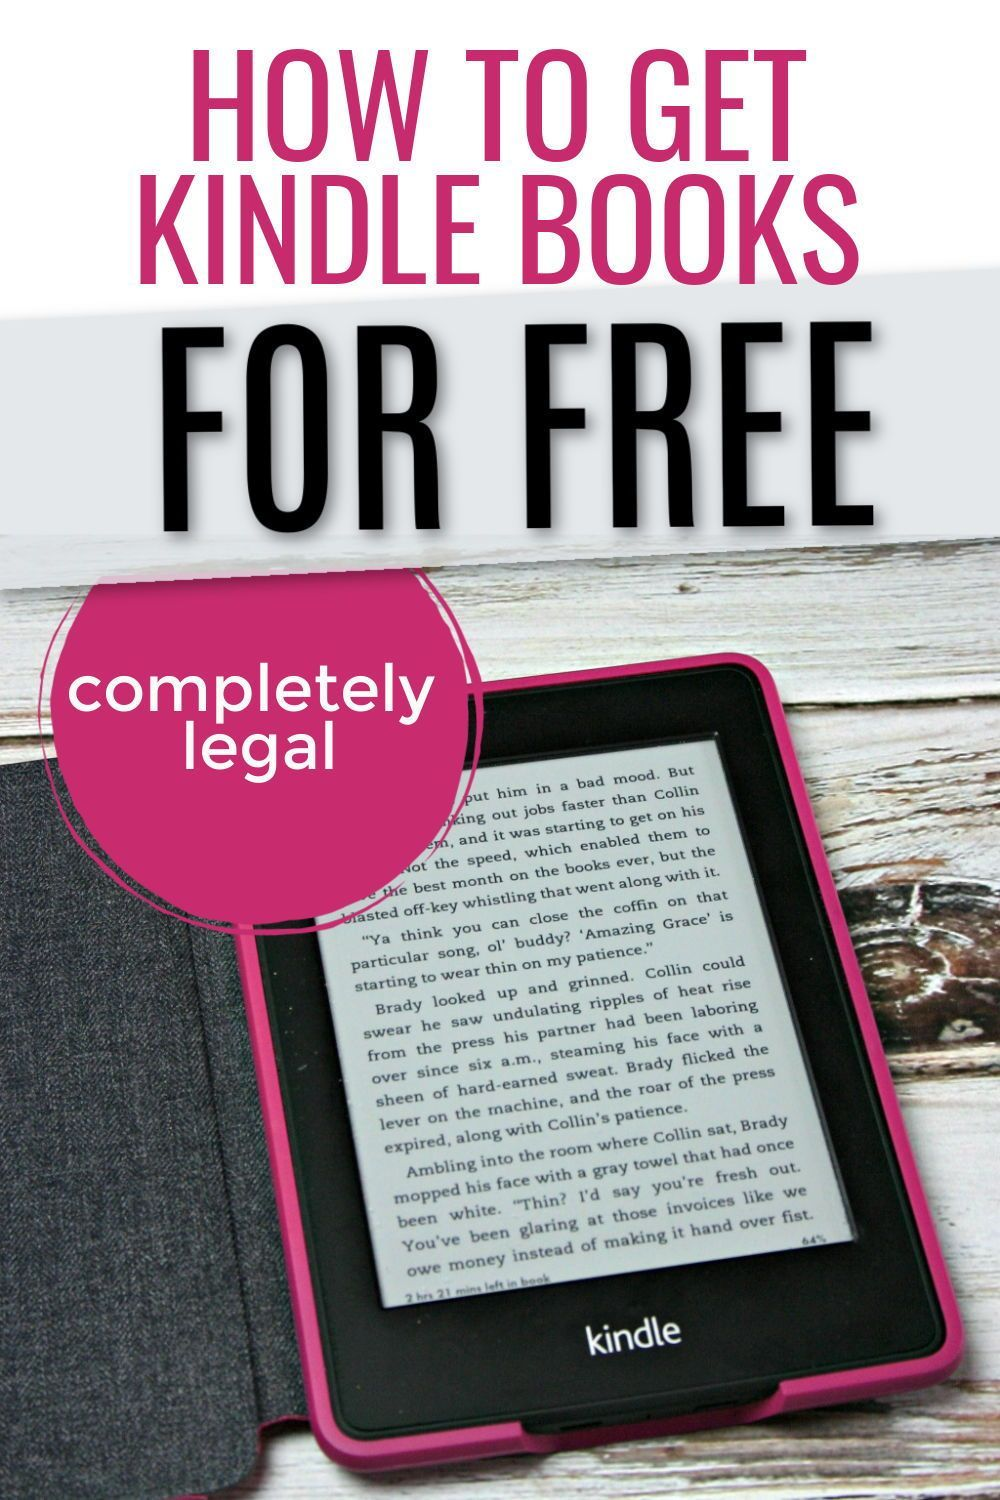 How To Get Kindle Books For Free Legally In 2021 Free Kindle Books Worth Reading Free Amazon Books Free Ebooks Download Books